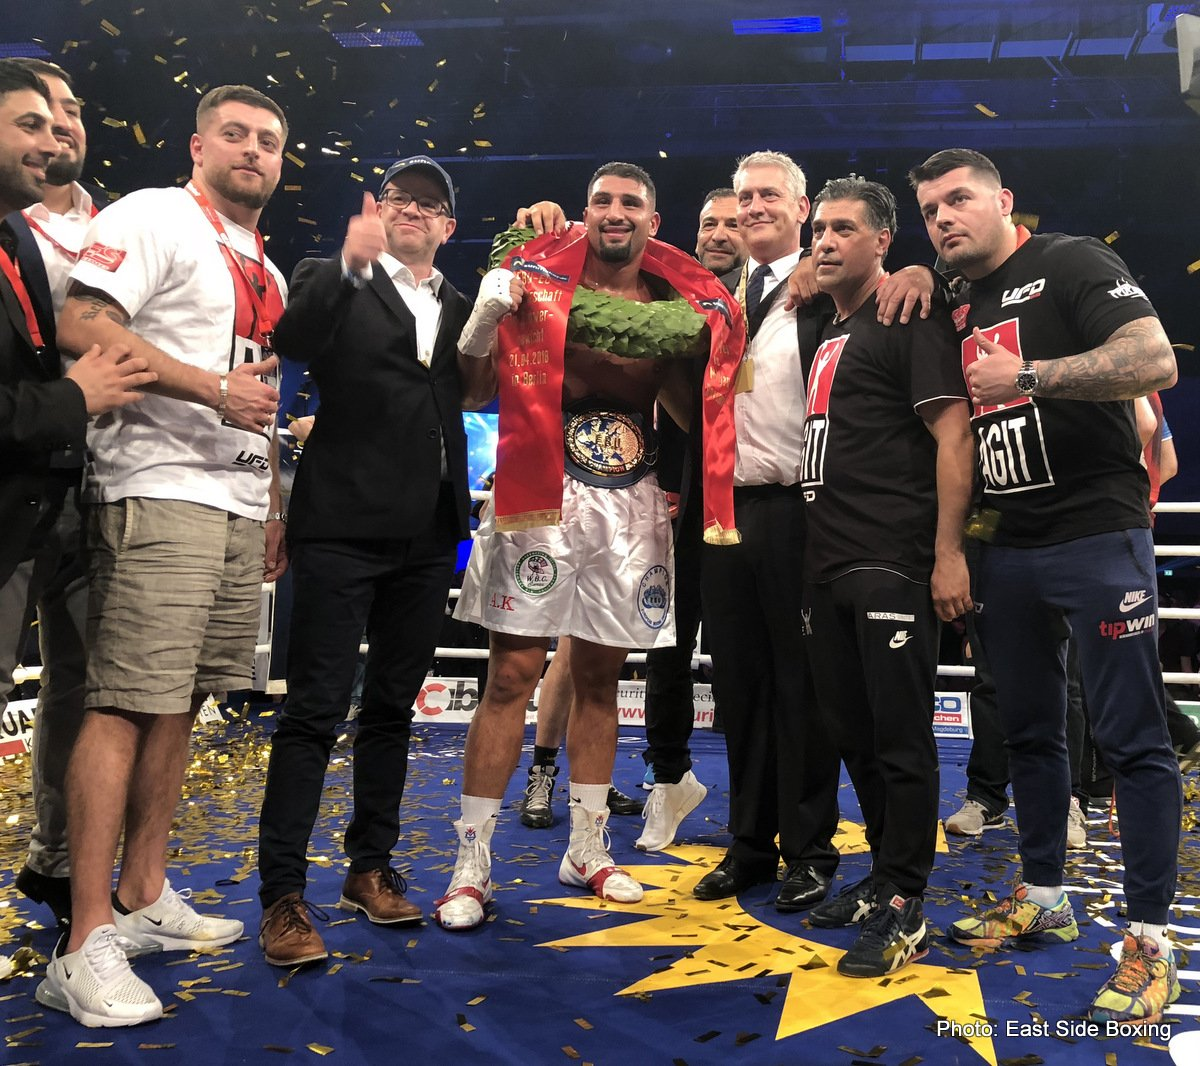 EBU heavyweight champion Agit Kabayel (18-0, 13 KOs) successfully defended his title for the second time in stopping an over-matched 24-year-old Miljan Rovcanin (19-2, 13 KOs) in the 3rd round on Saturday night in front of 3300 boxing fans at the the Estrel Convention Center, Neukoelln, Berlin, Germany.